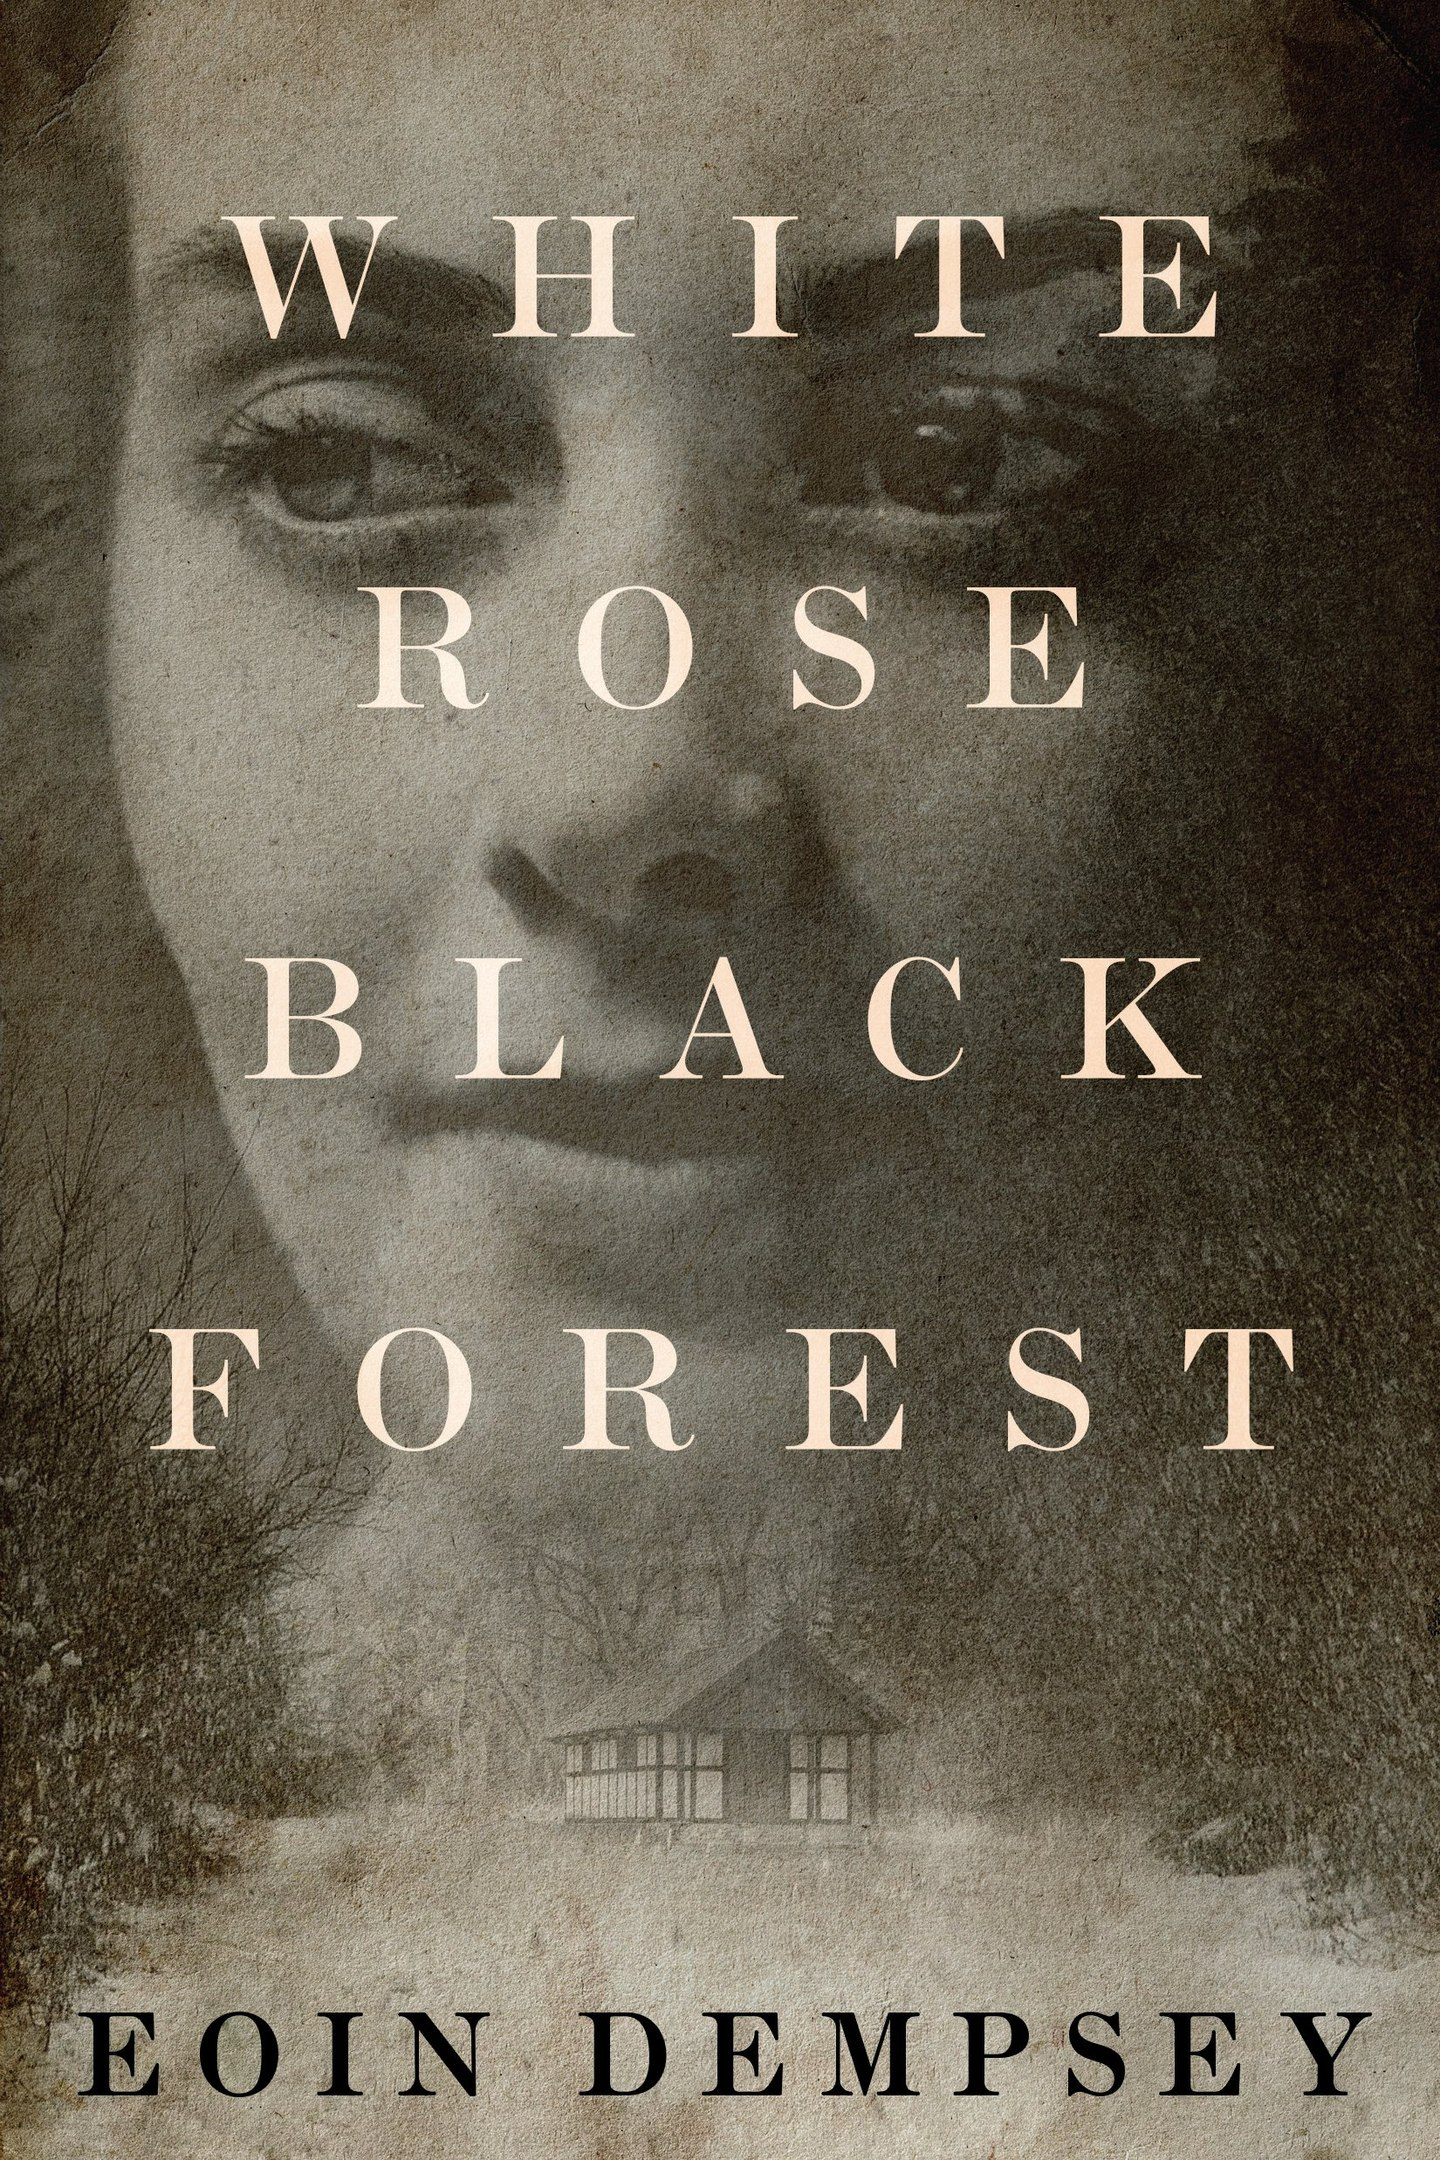 Eoin Dempsey – White Rose, Black Forest